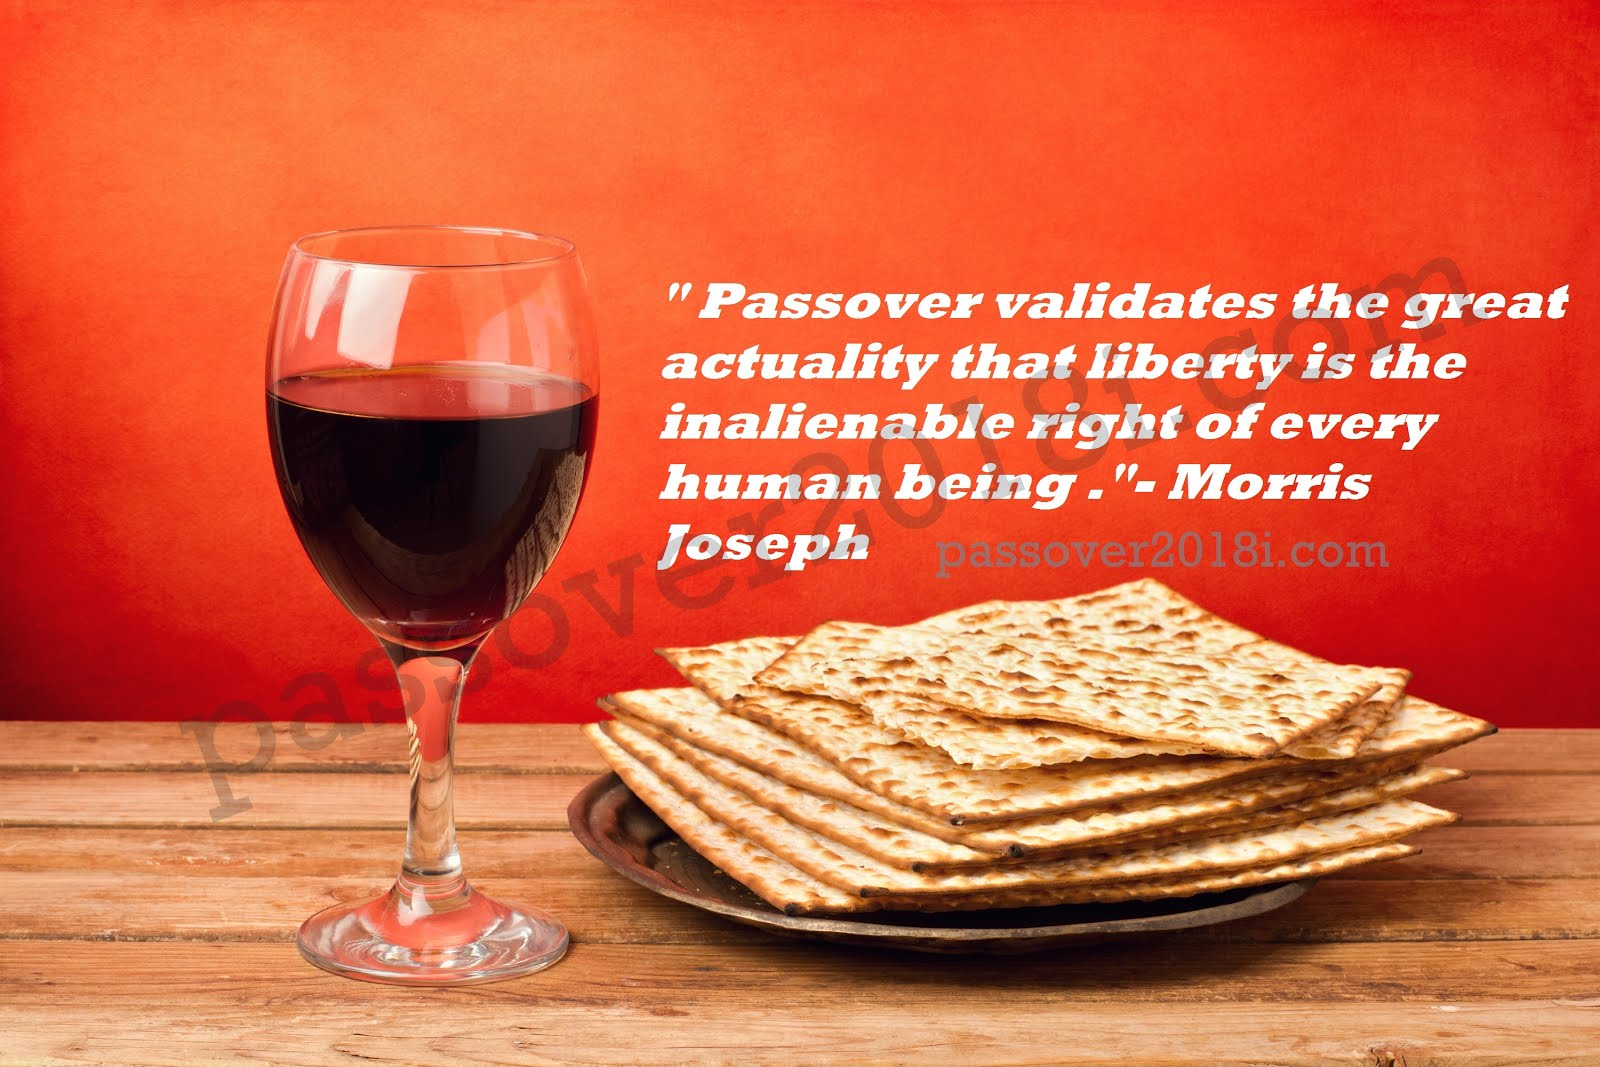 Passover day 2018 sms wishes quotes and messages happy passover passover 2018 quotes m4hsunfo